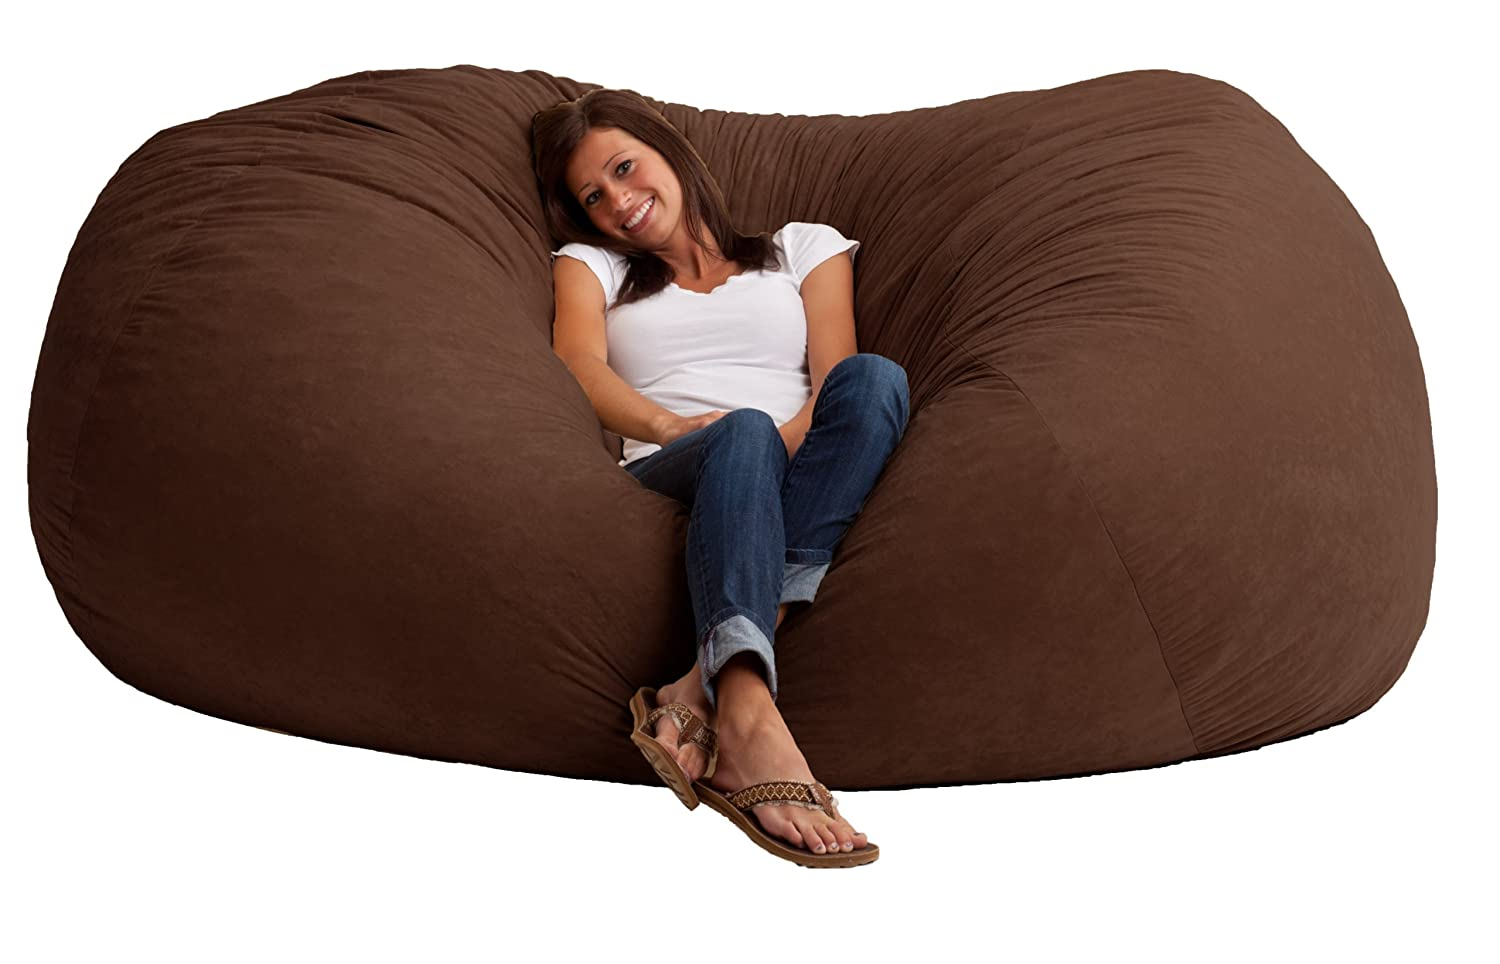 Large Lounge Floor Pillows : Chair Sofa Oversized Furniture Recline Comfort Seat Lounge Bedroom Dorm Bean Bag eBay